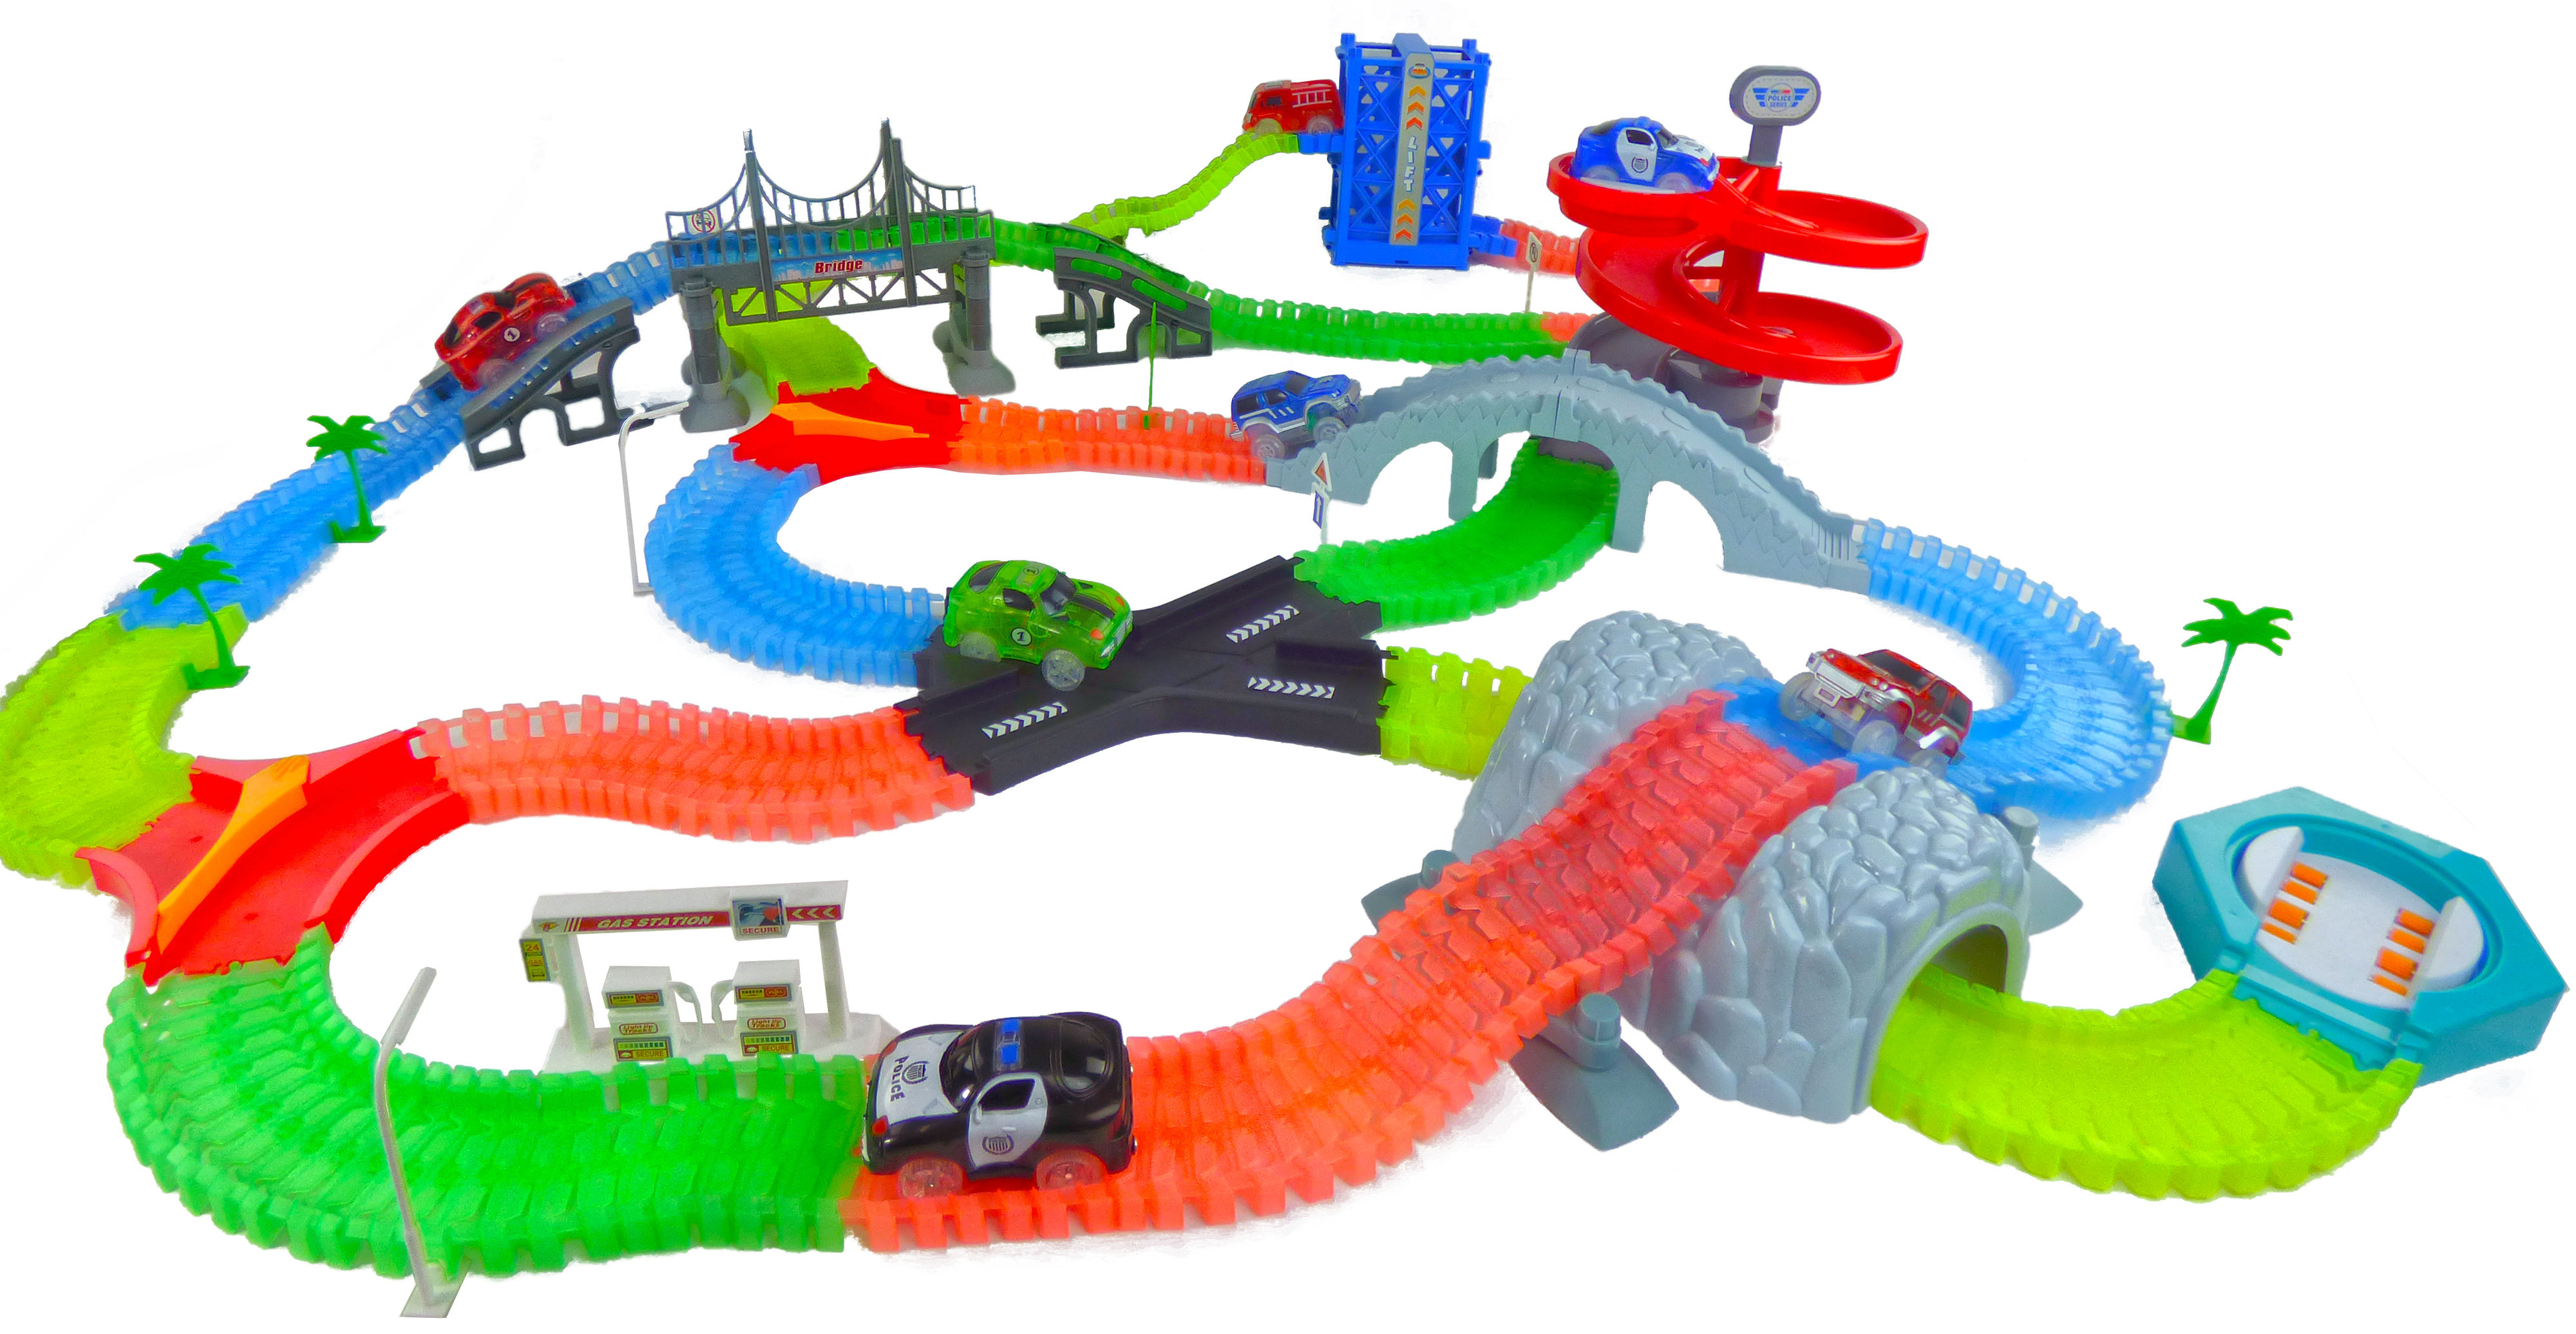 Light Up Twisting Glow In The Dark Race Tracks Race Track Toy Cars